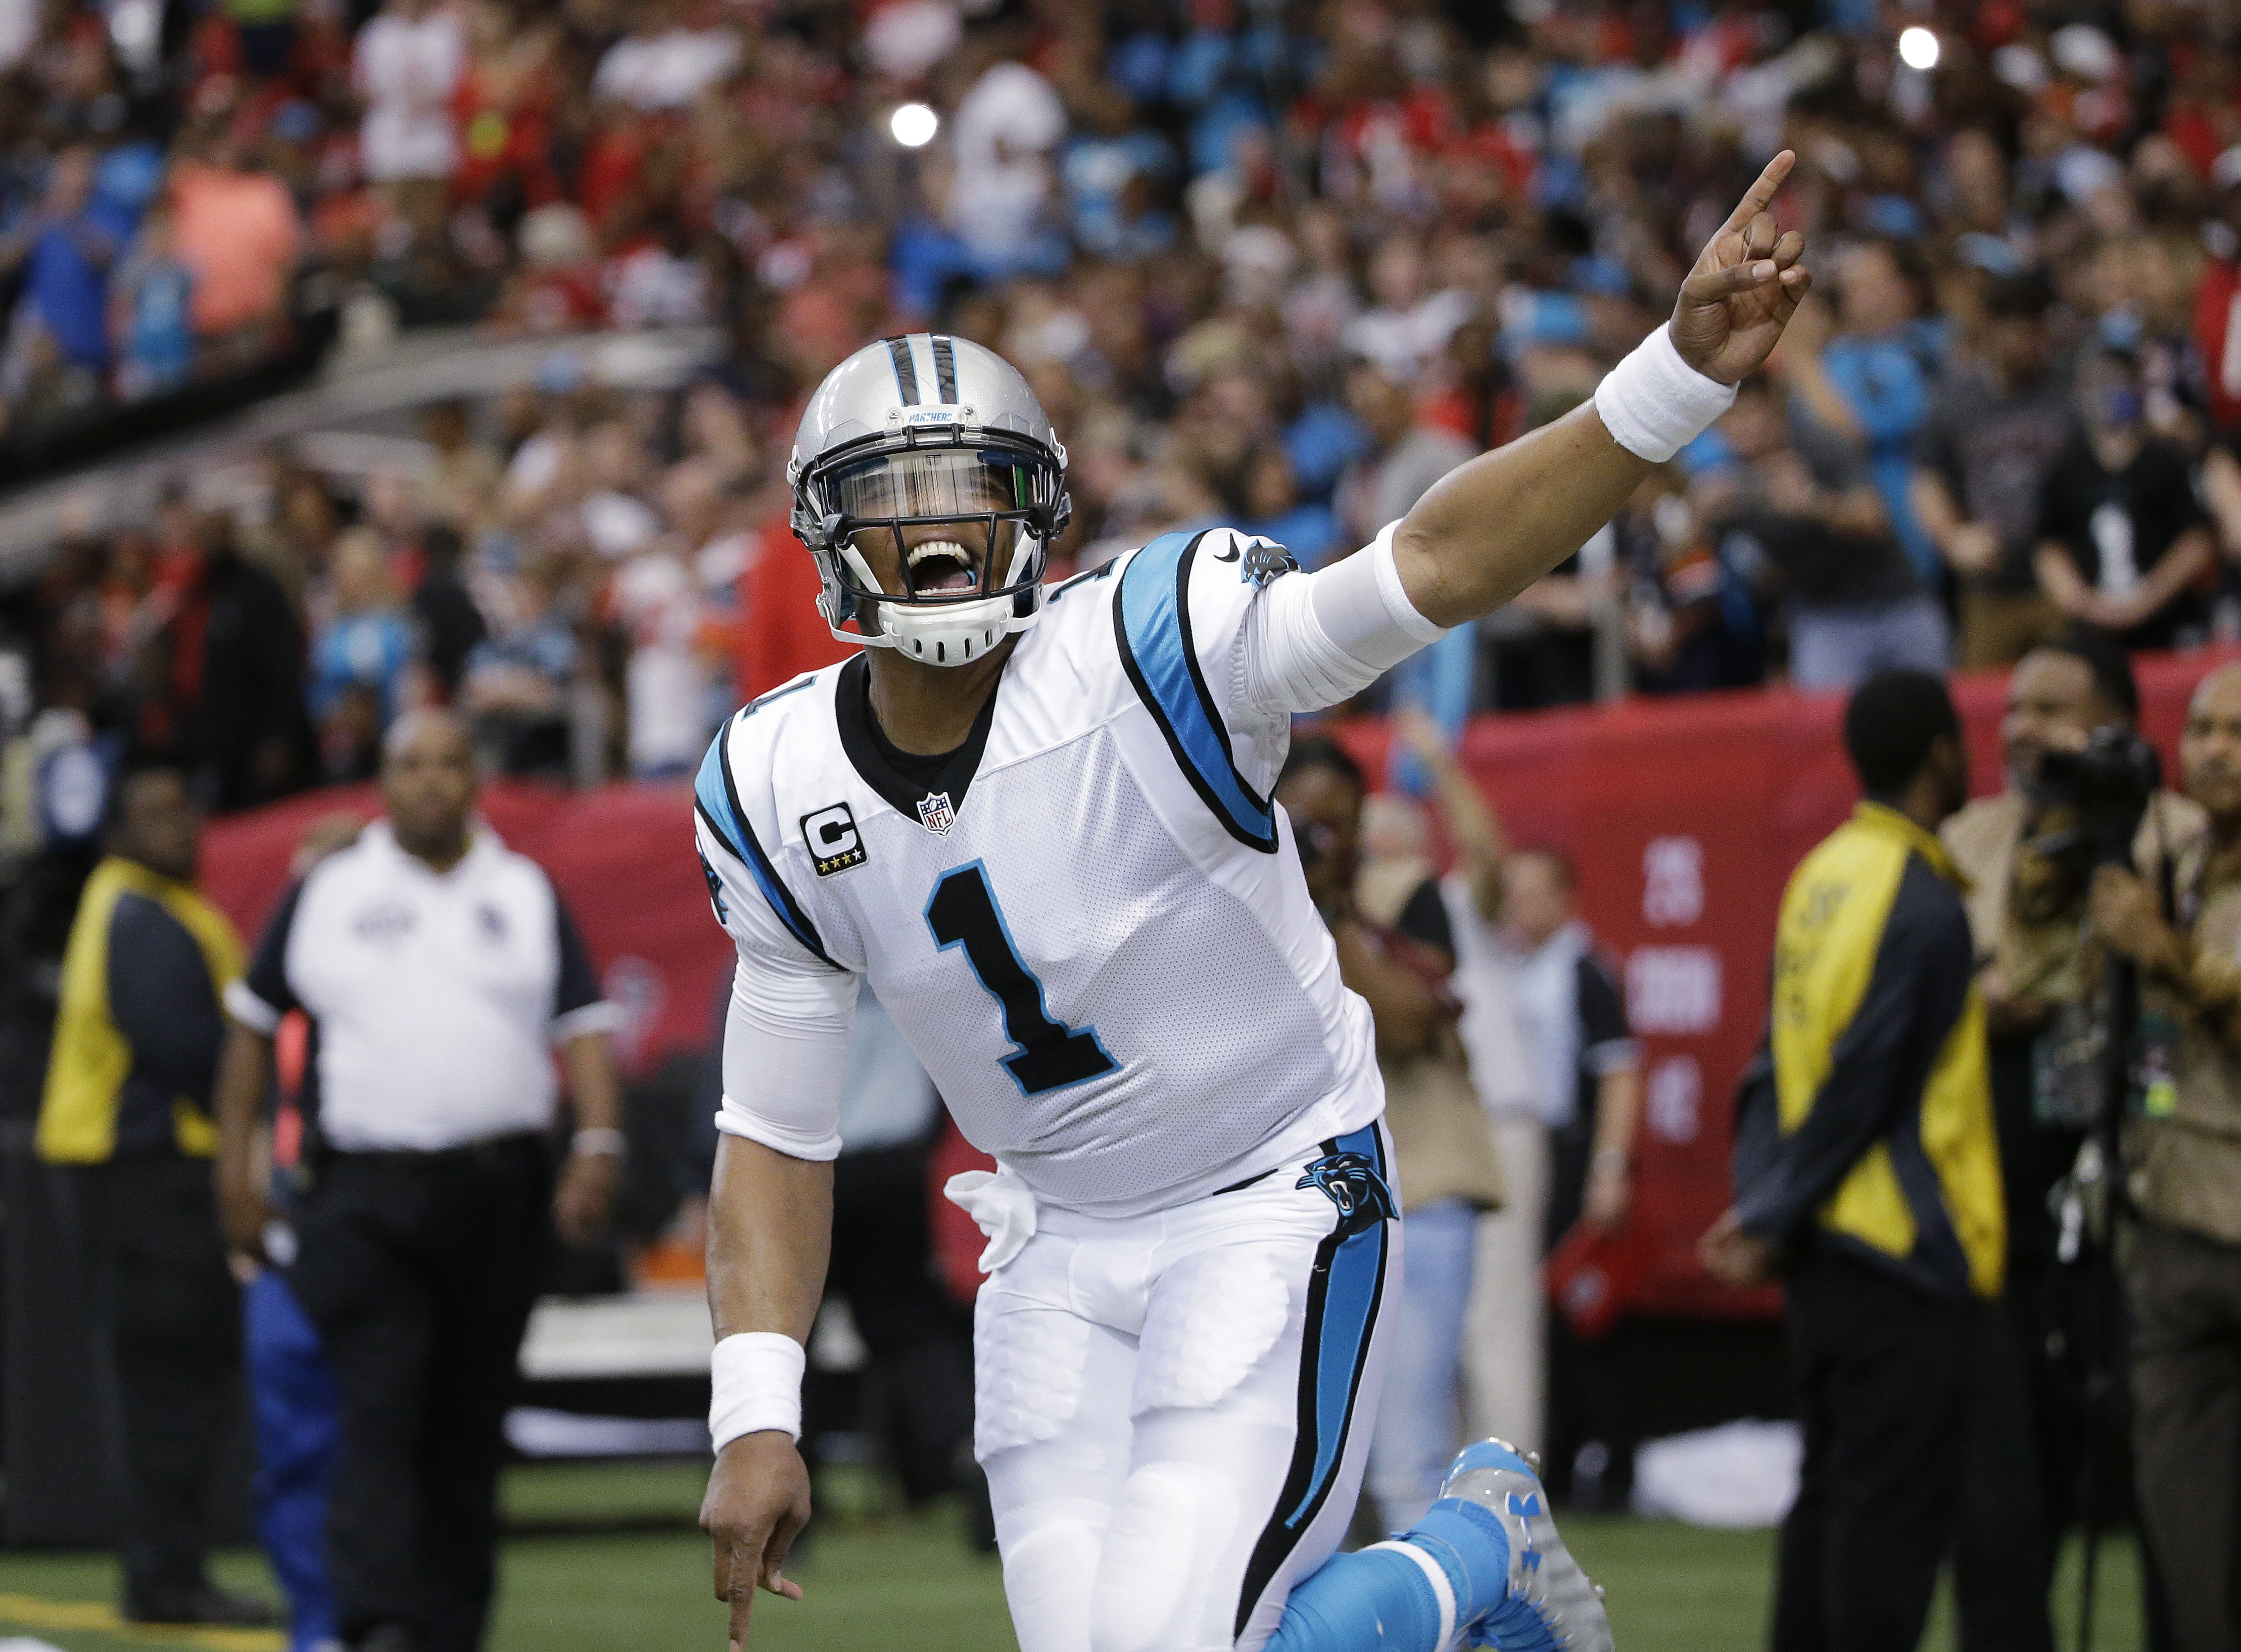 FILE - In this Dec. 27, 2015, file photo, Carolina Panthers quarterback Cam Newton celebrates his touchdown against the Atlanta Falcons during the first half of an NFL football game in Atlanta. Newton, the NFL MVP last season, anchors the top-scoring offe